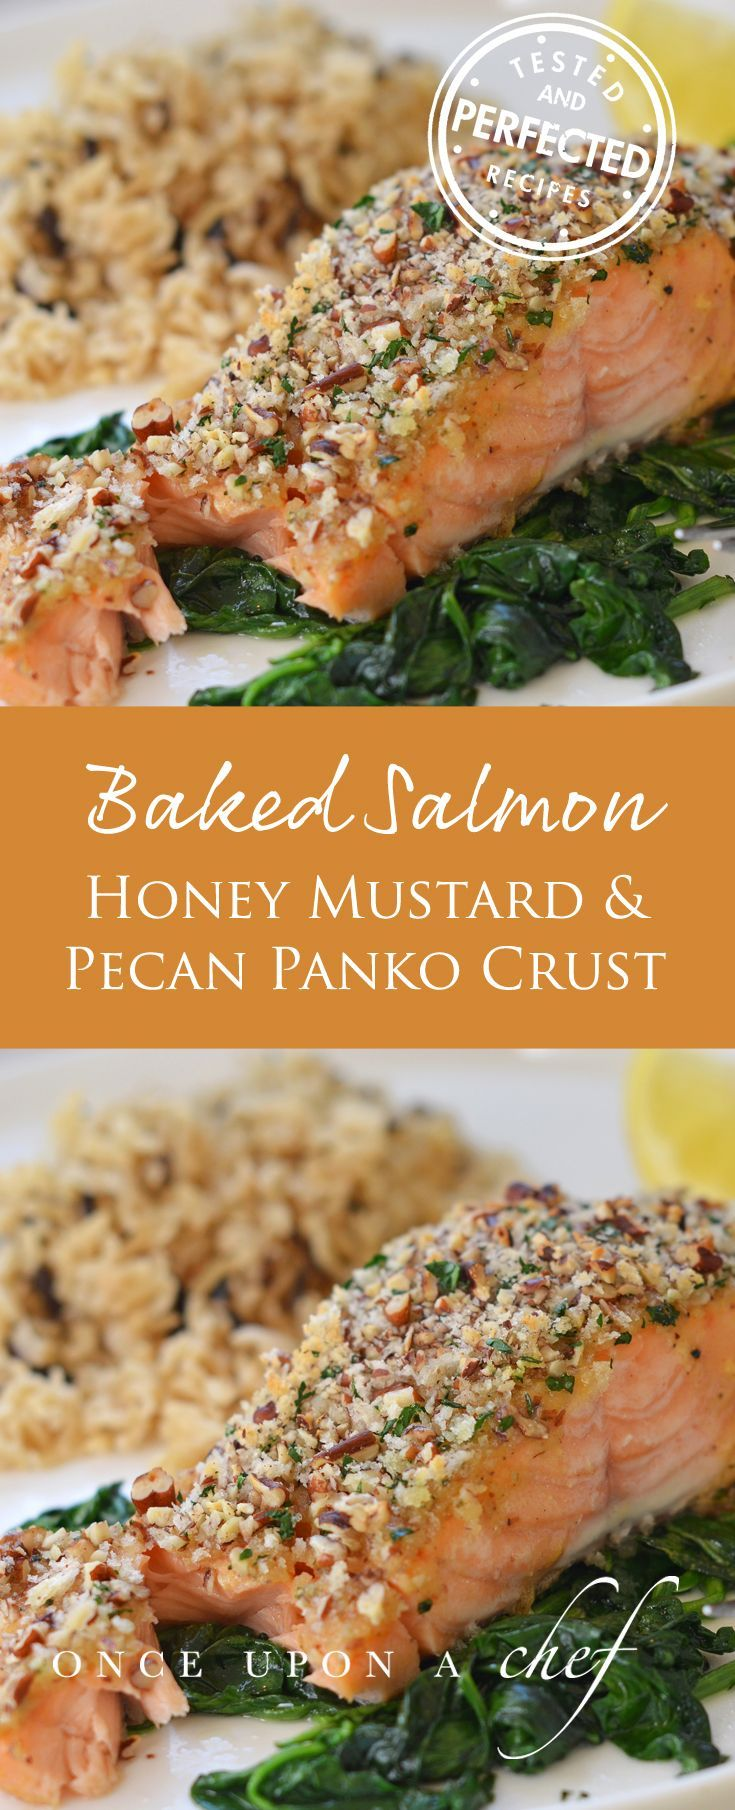 Baked Salmon with Honey Mustard and Pecan Panko Crust